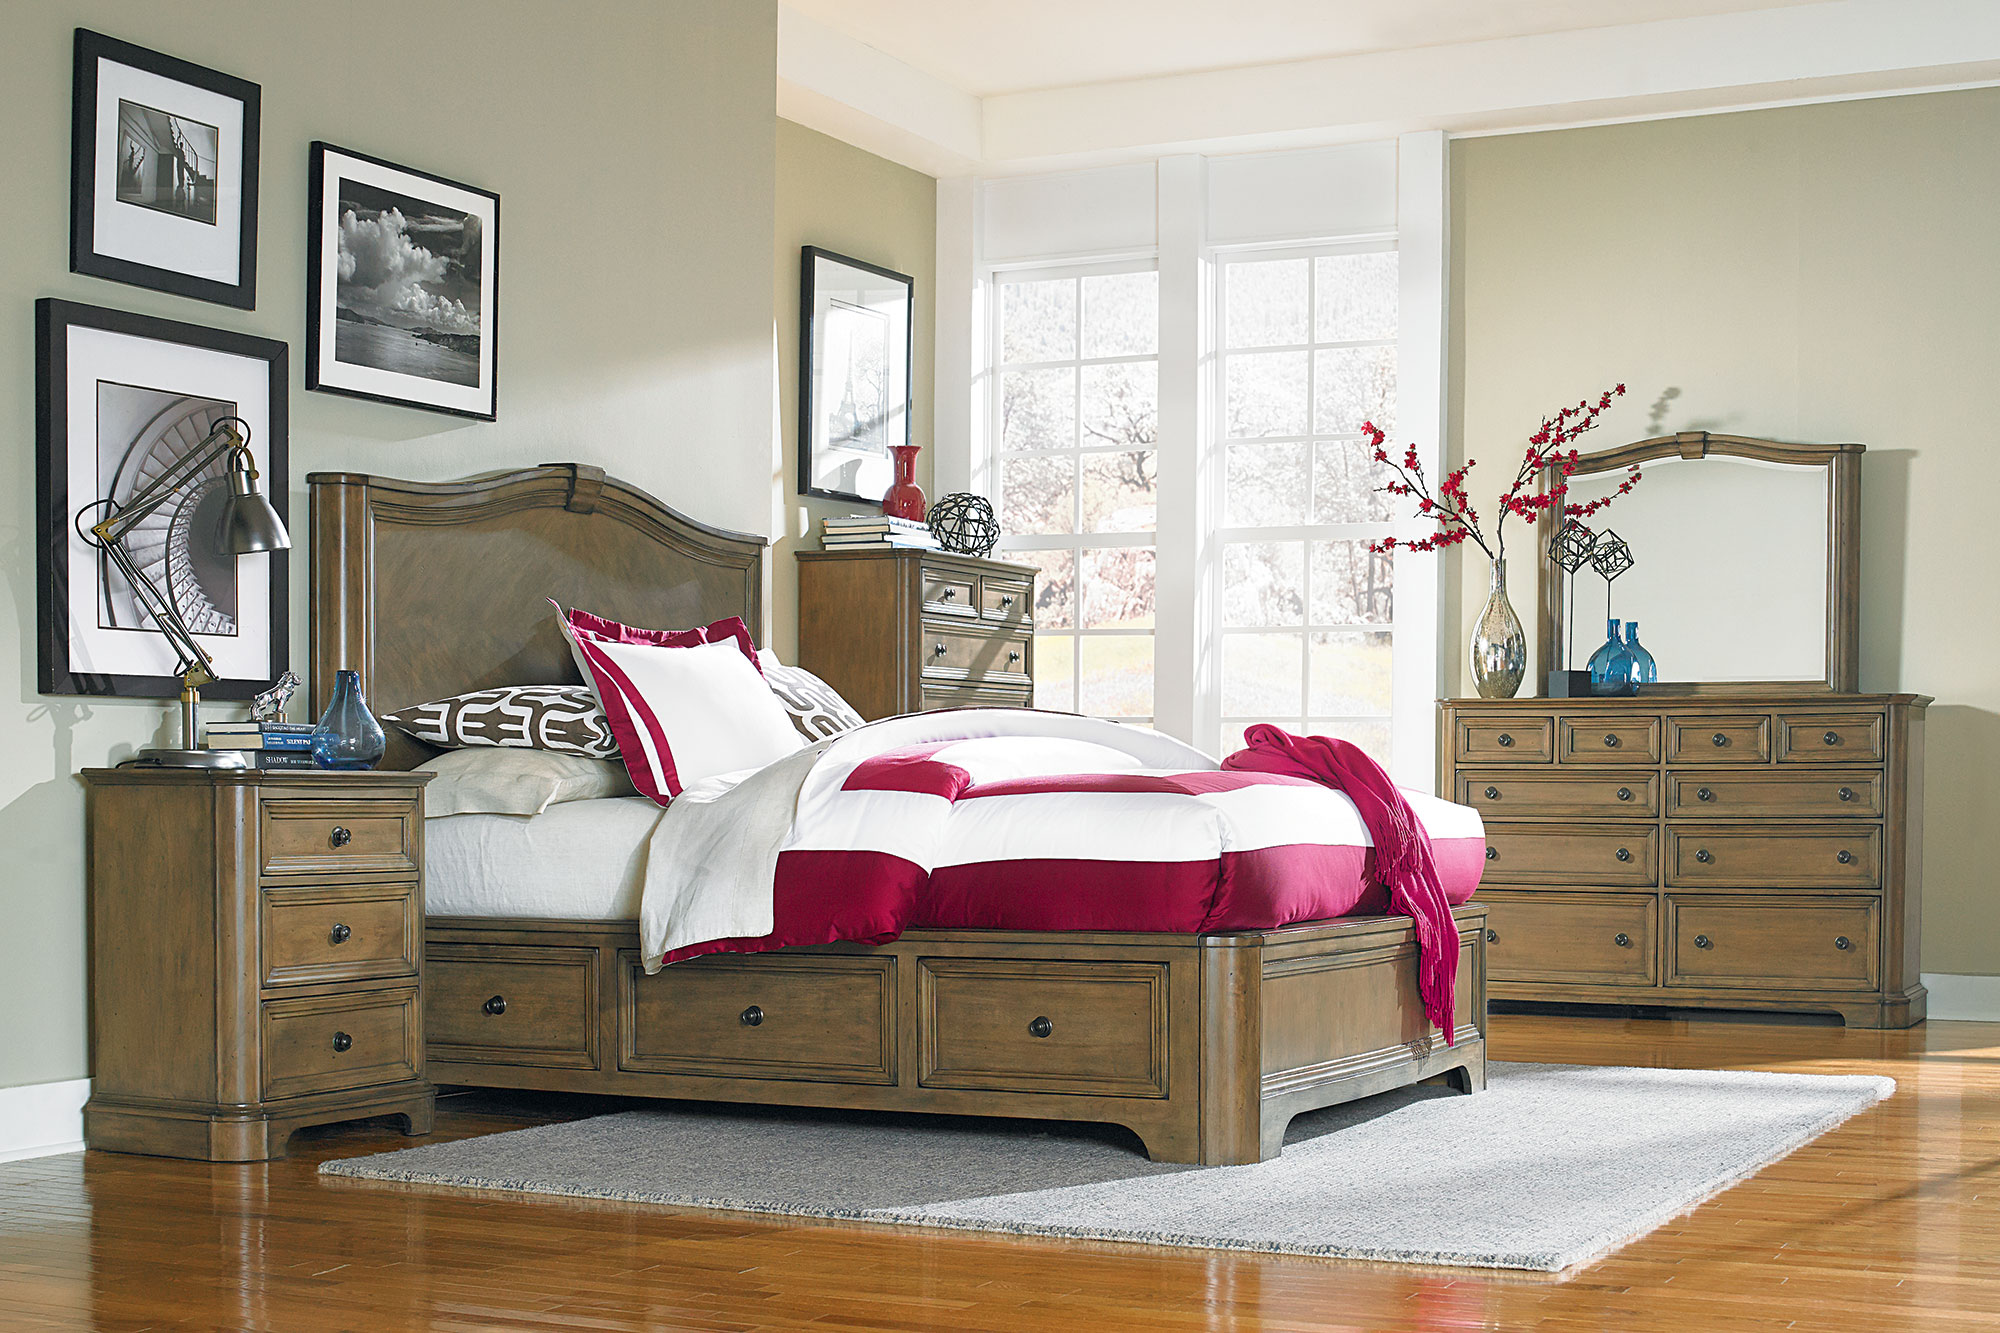 High Quality Stonewood Bedroom Collection